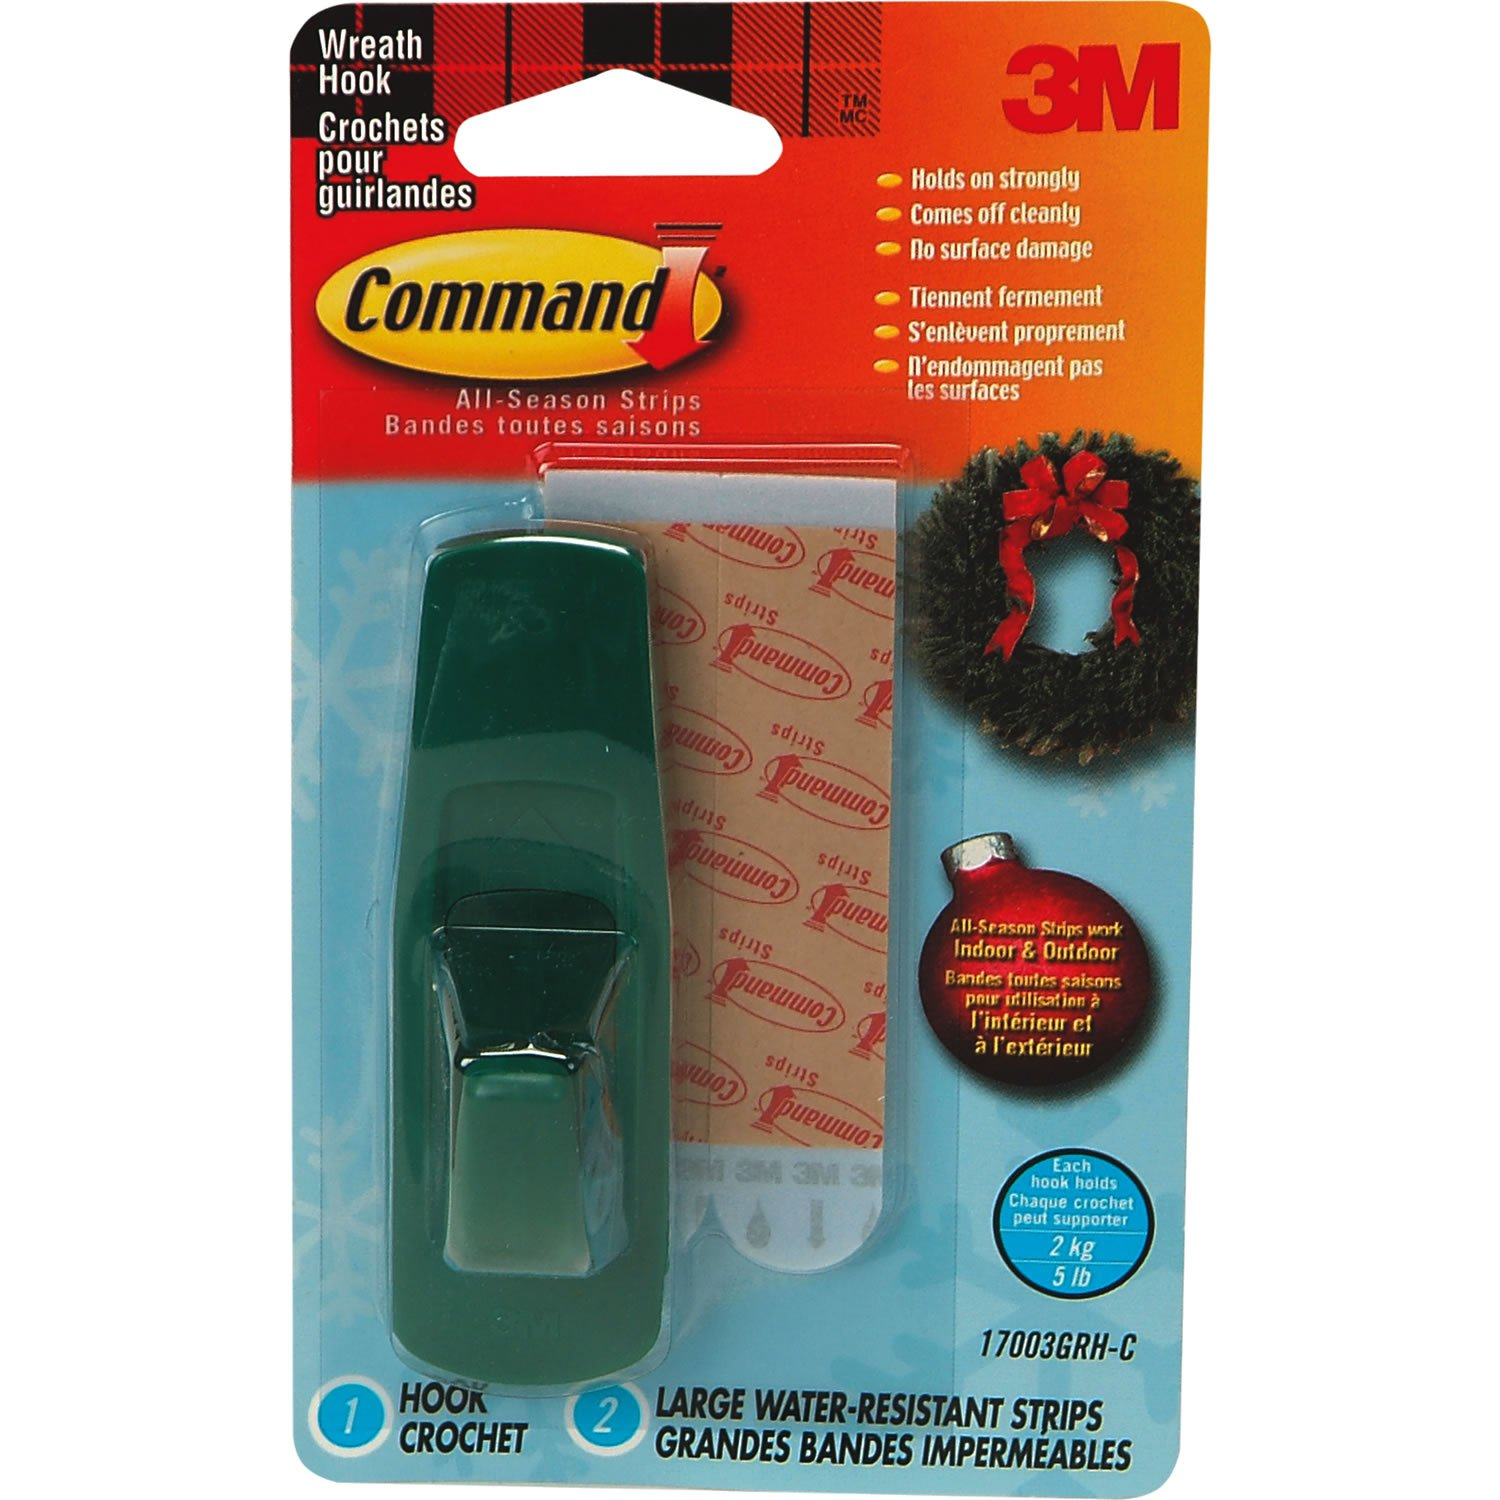 Command Christmas Wreath Hook for Front Door Wreaths with Command Water Resistant Strips Amazon.co.uk Office Products  sc 1 st  Amazon UK & Command Christmas Wreath Hook for Front Door Wreaths with Command ...